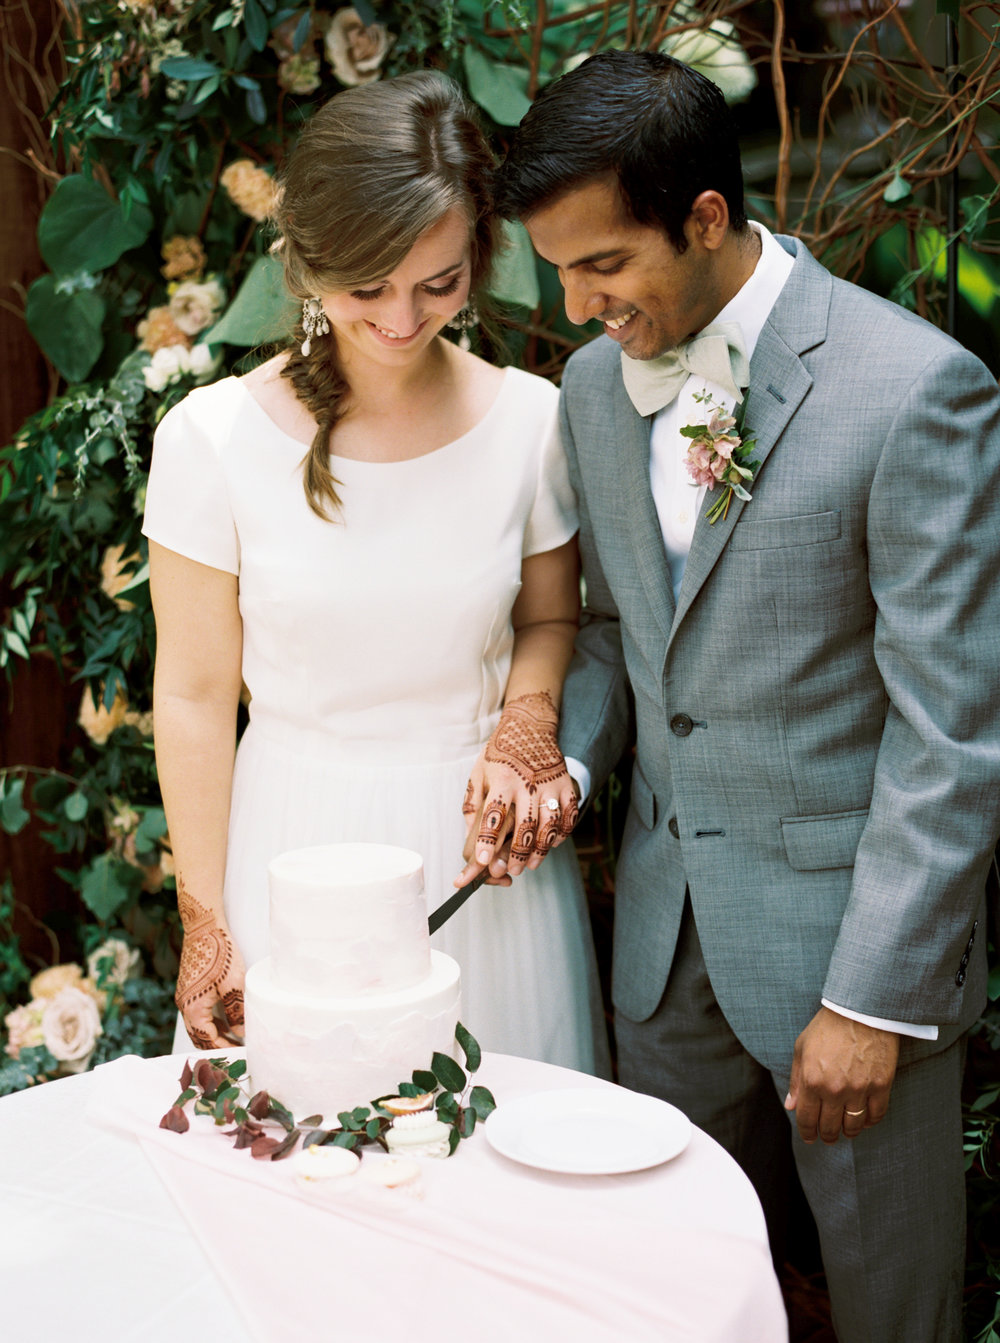 Wahoo_Grill_Atlanta_Indian_Wedding_Abigail_Malone_Photgoraphy_FIlm-144.jpg